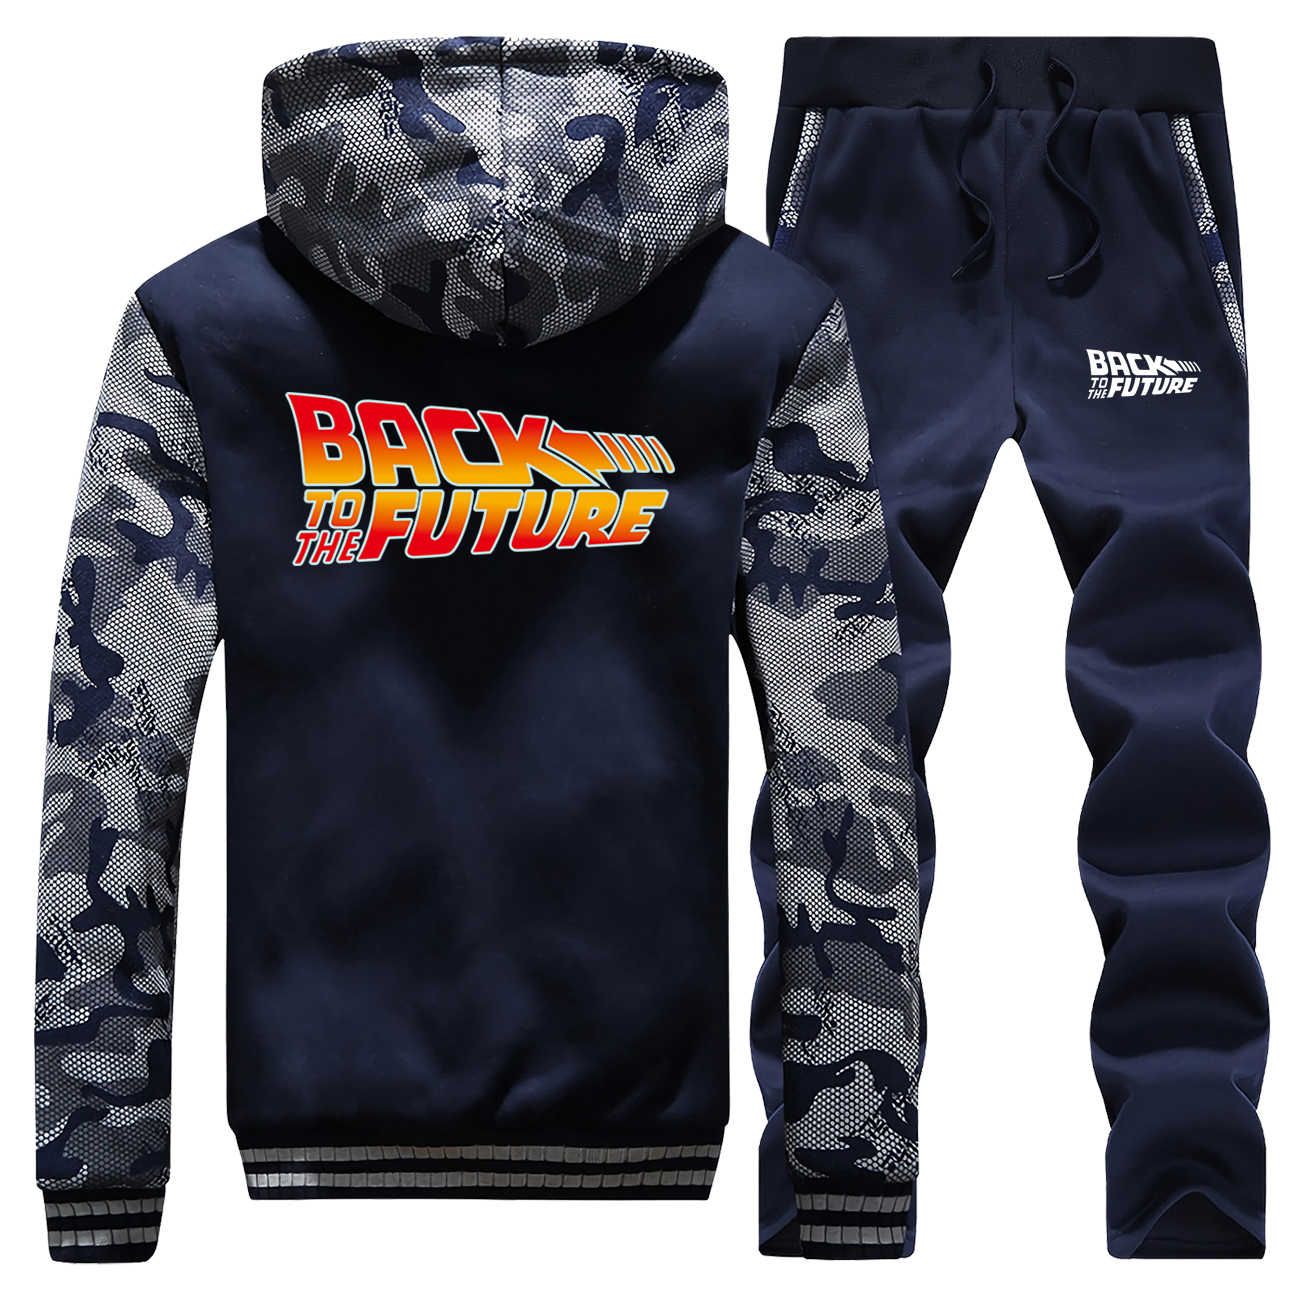 Back To The Future Winter New Casual Men Jacket Coat Thick Hip Hop Camouflage Mens Hoodies Suit Sportswear + Pants 2 Piece Set